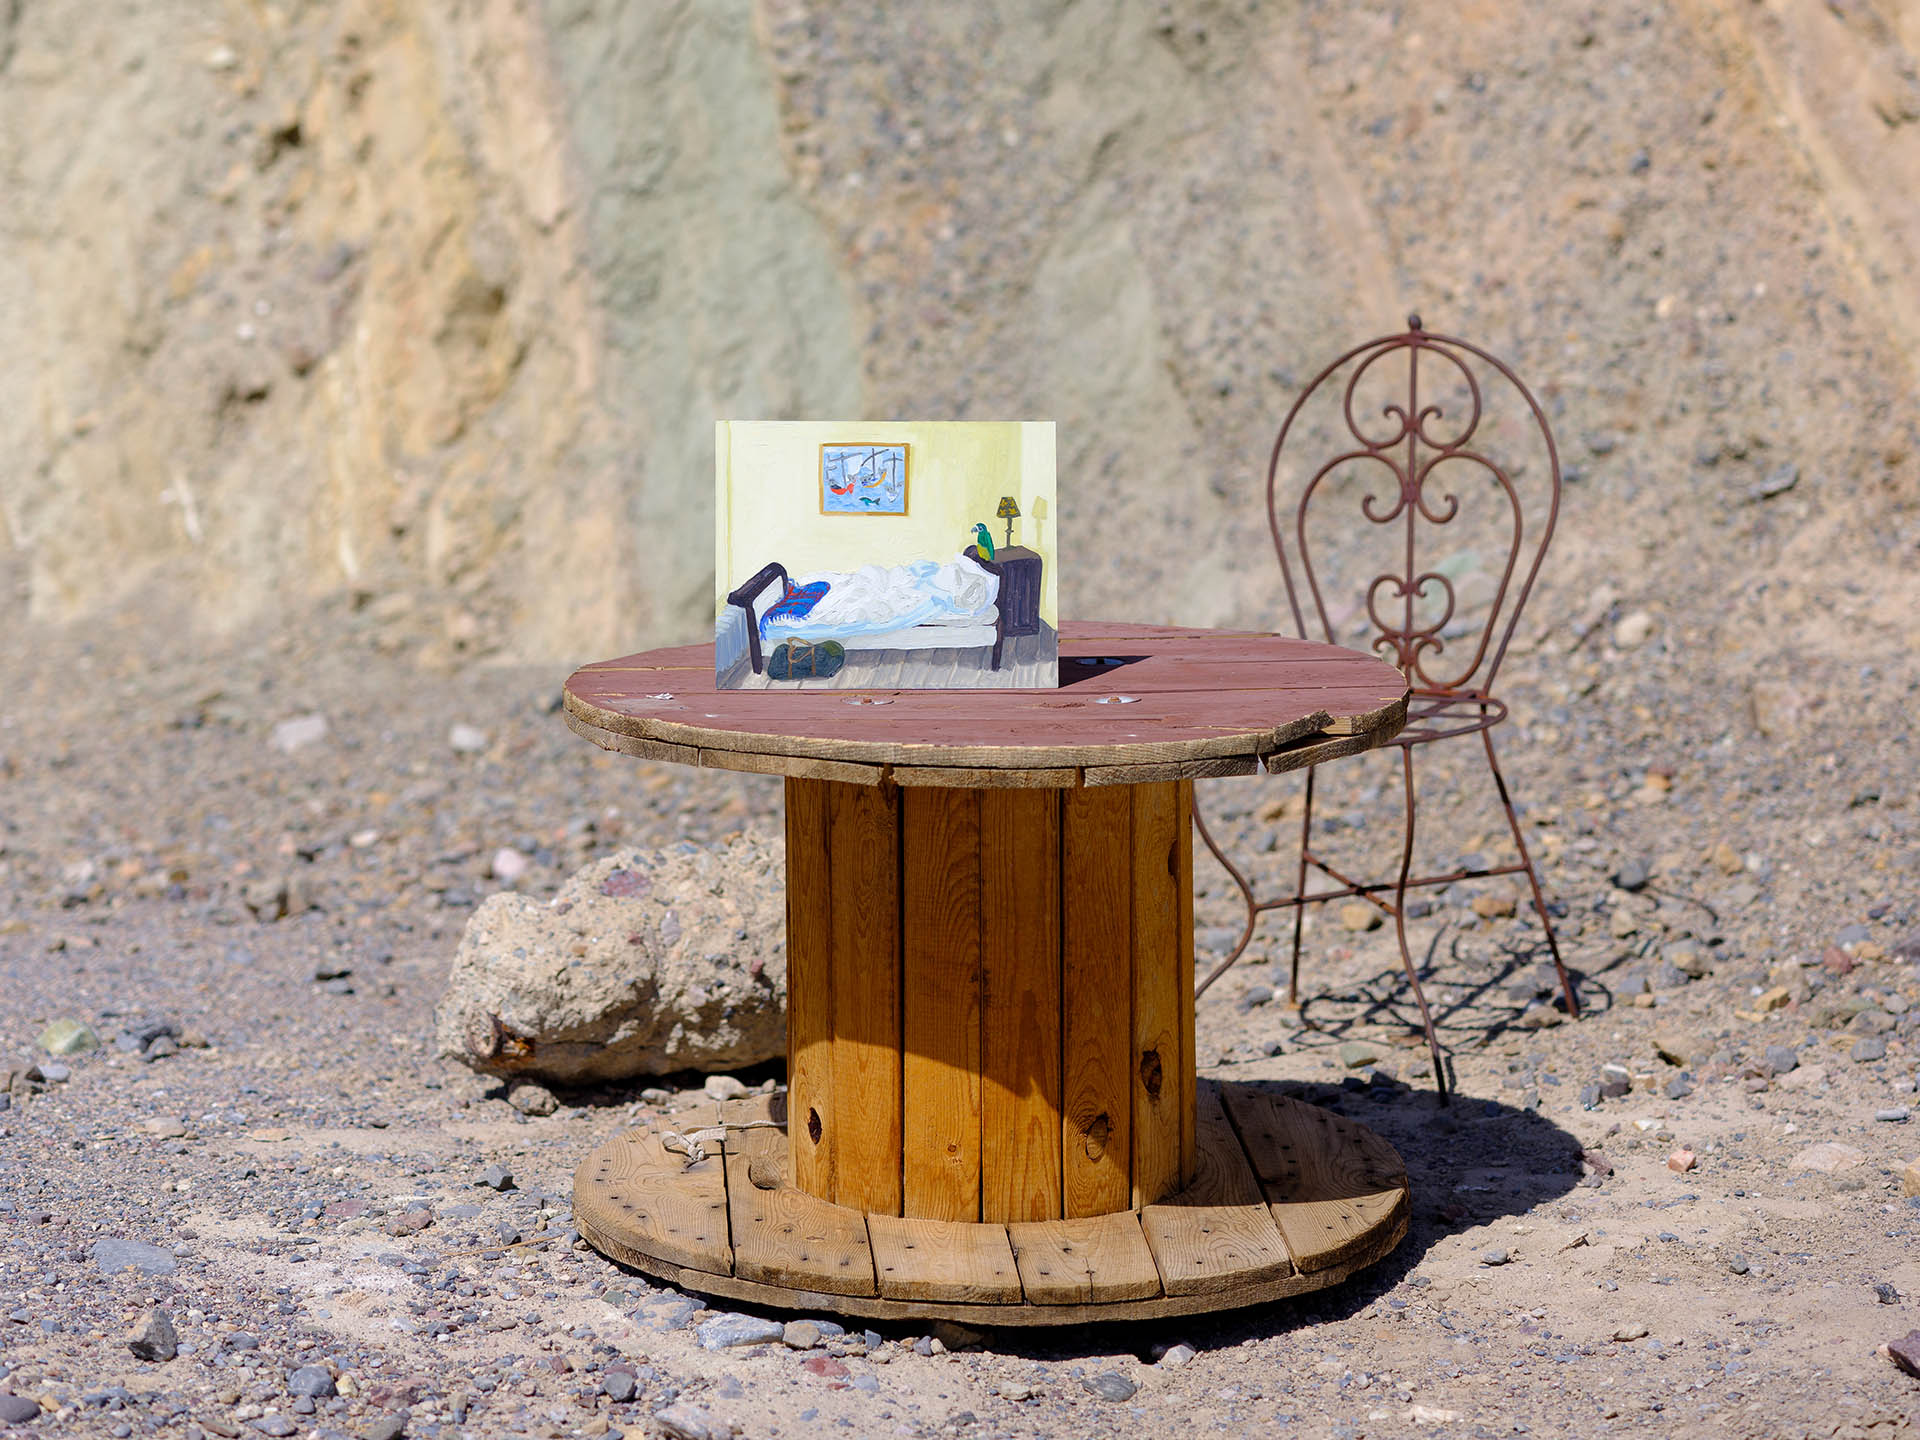 An installation view of Claudia Keep's painting, L'Enfance, captured by photographer Tag Christof in the Western United States in 2021 for MARCH. The image shows a painting sitting on a table in the desert.